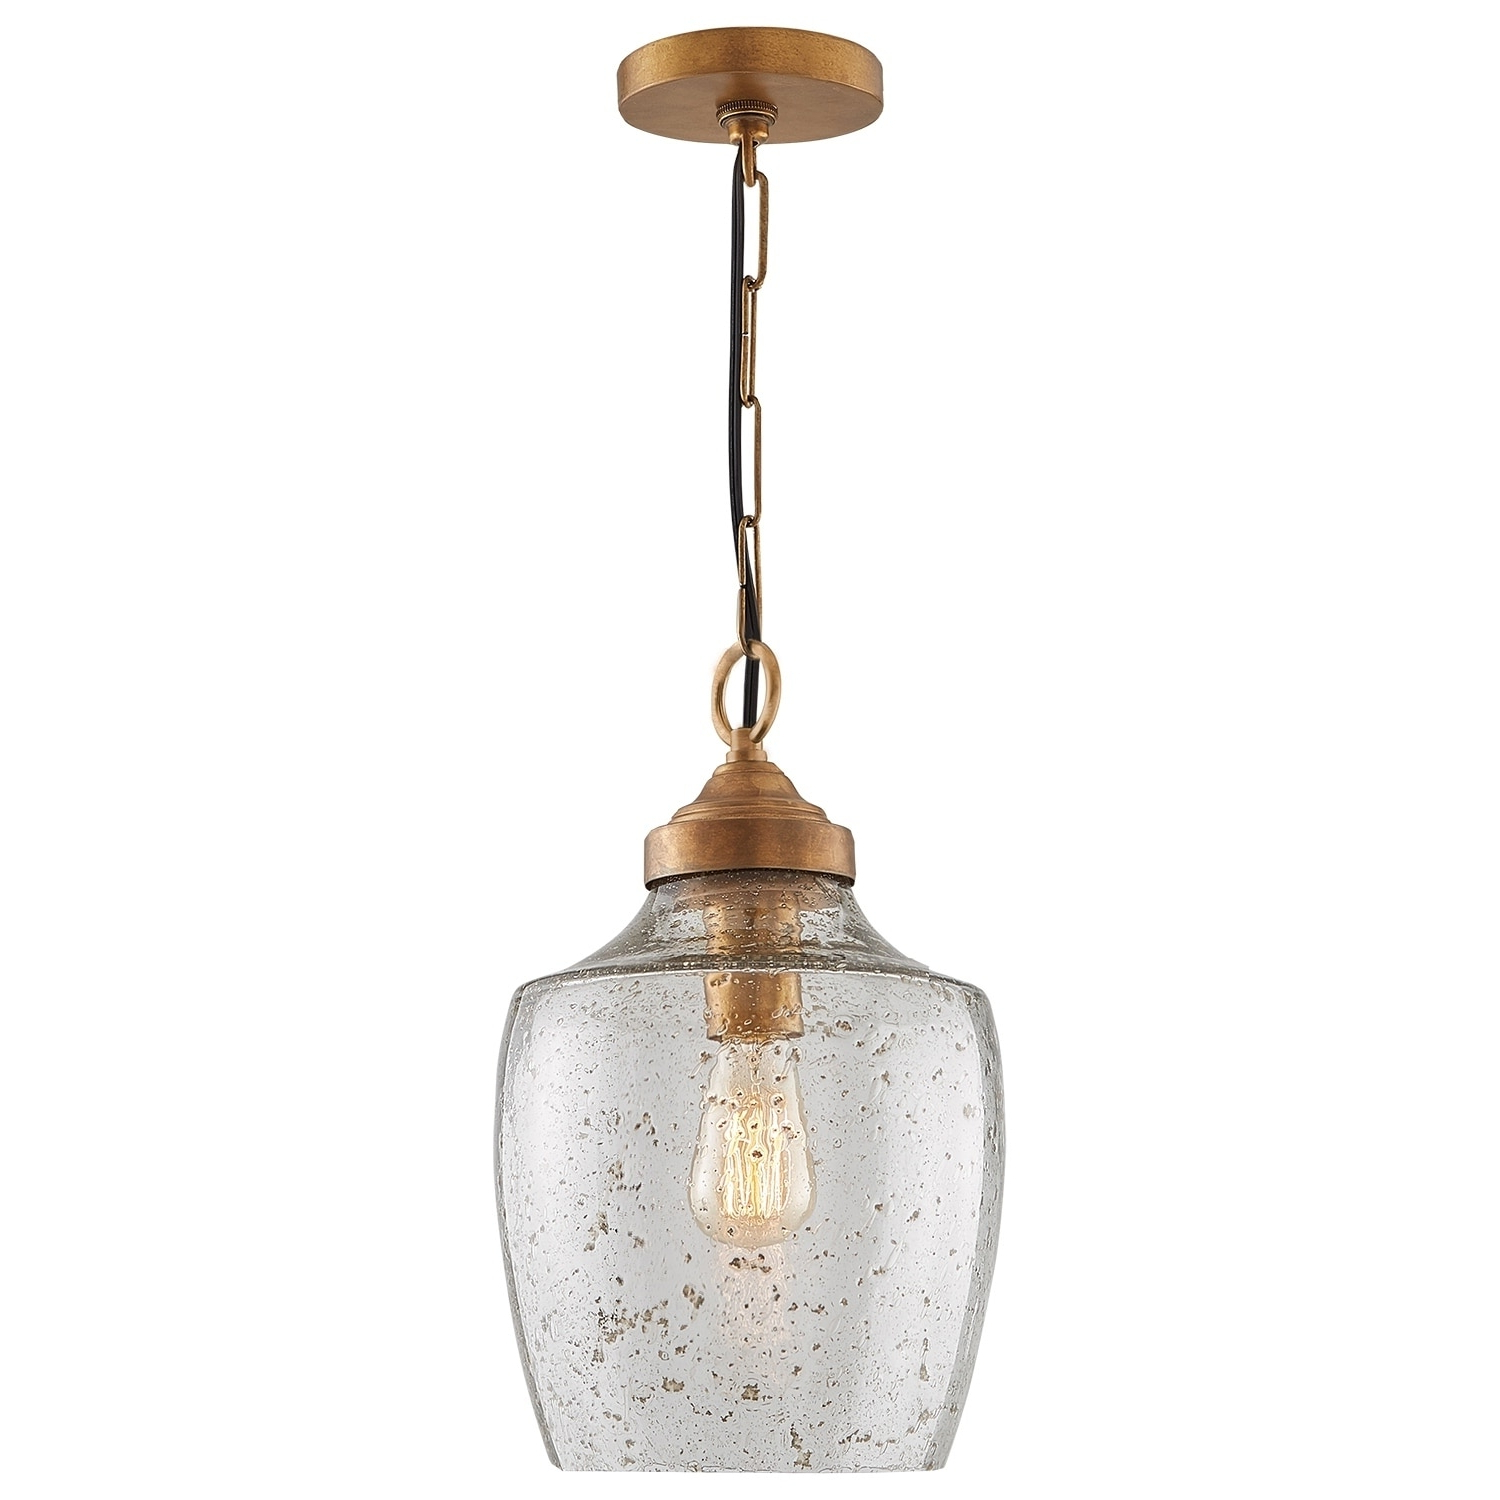 Carey 1 Light Single Bell Pendants With Regard To Fashionable Transitional 1 Light Glass Pendant With Rose Brass – Rose (View 10 of 20)